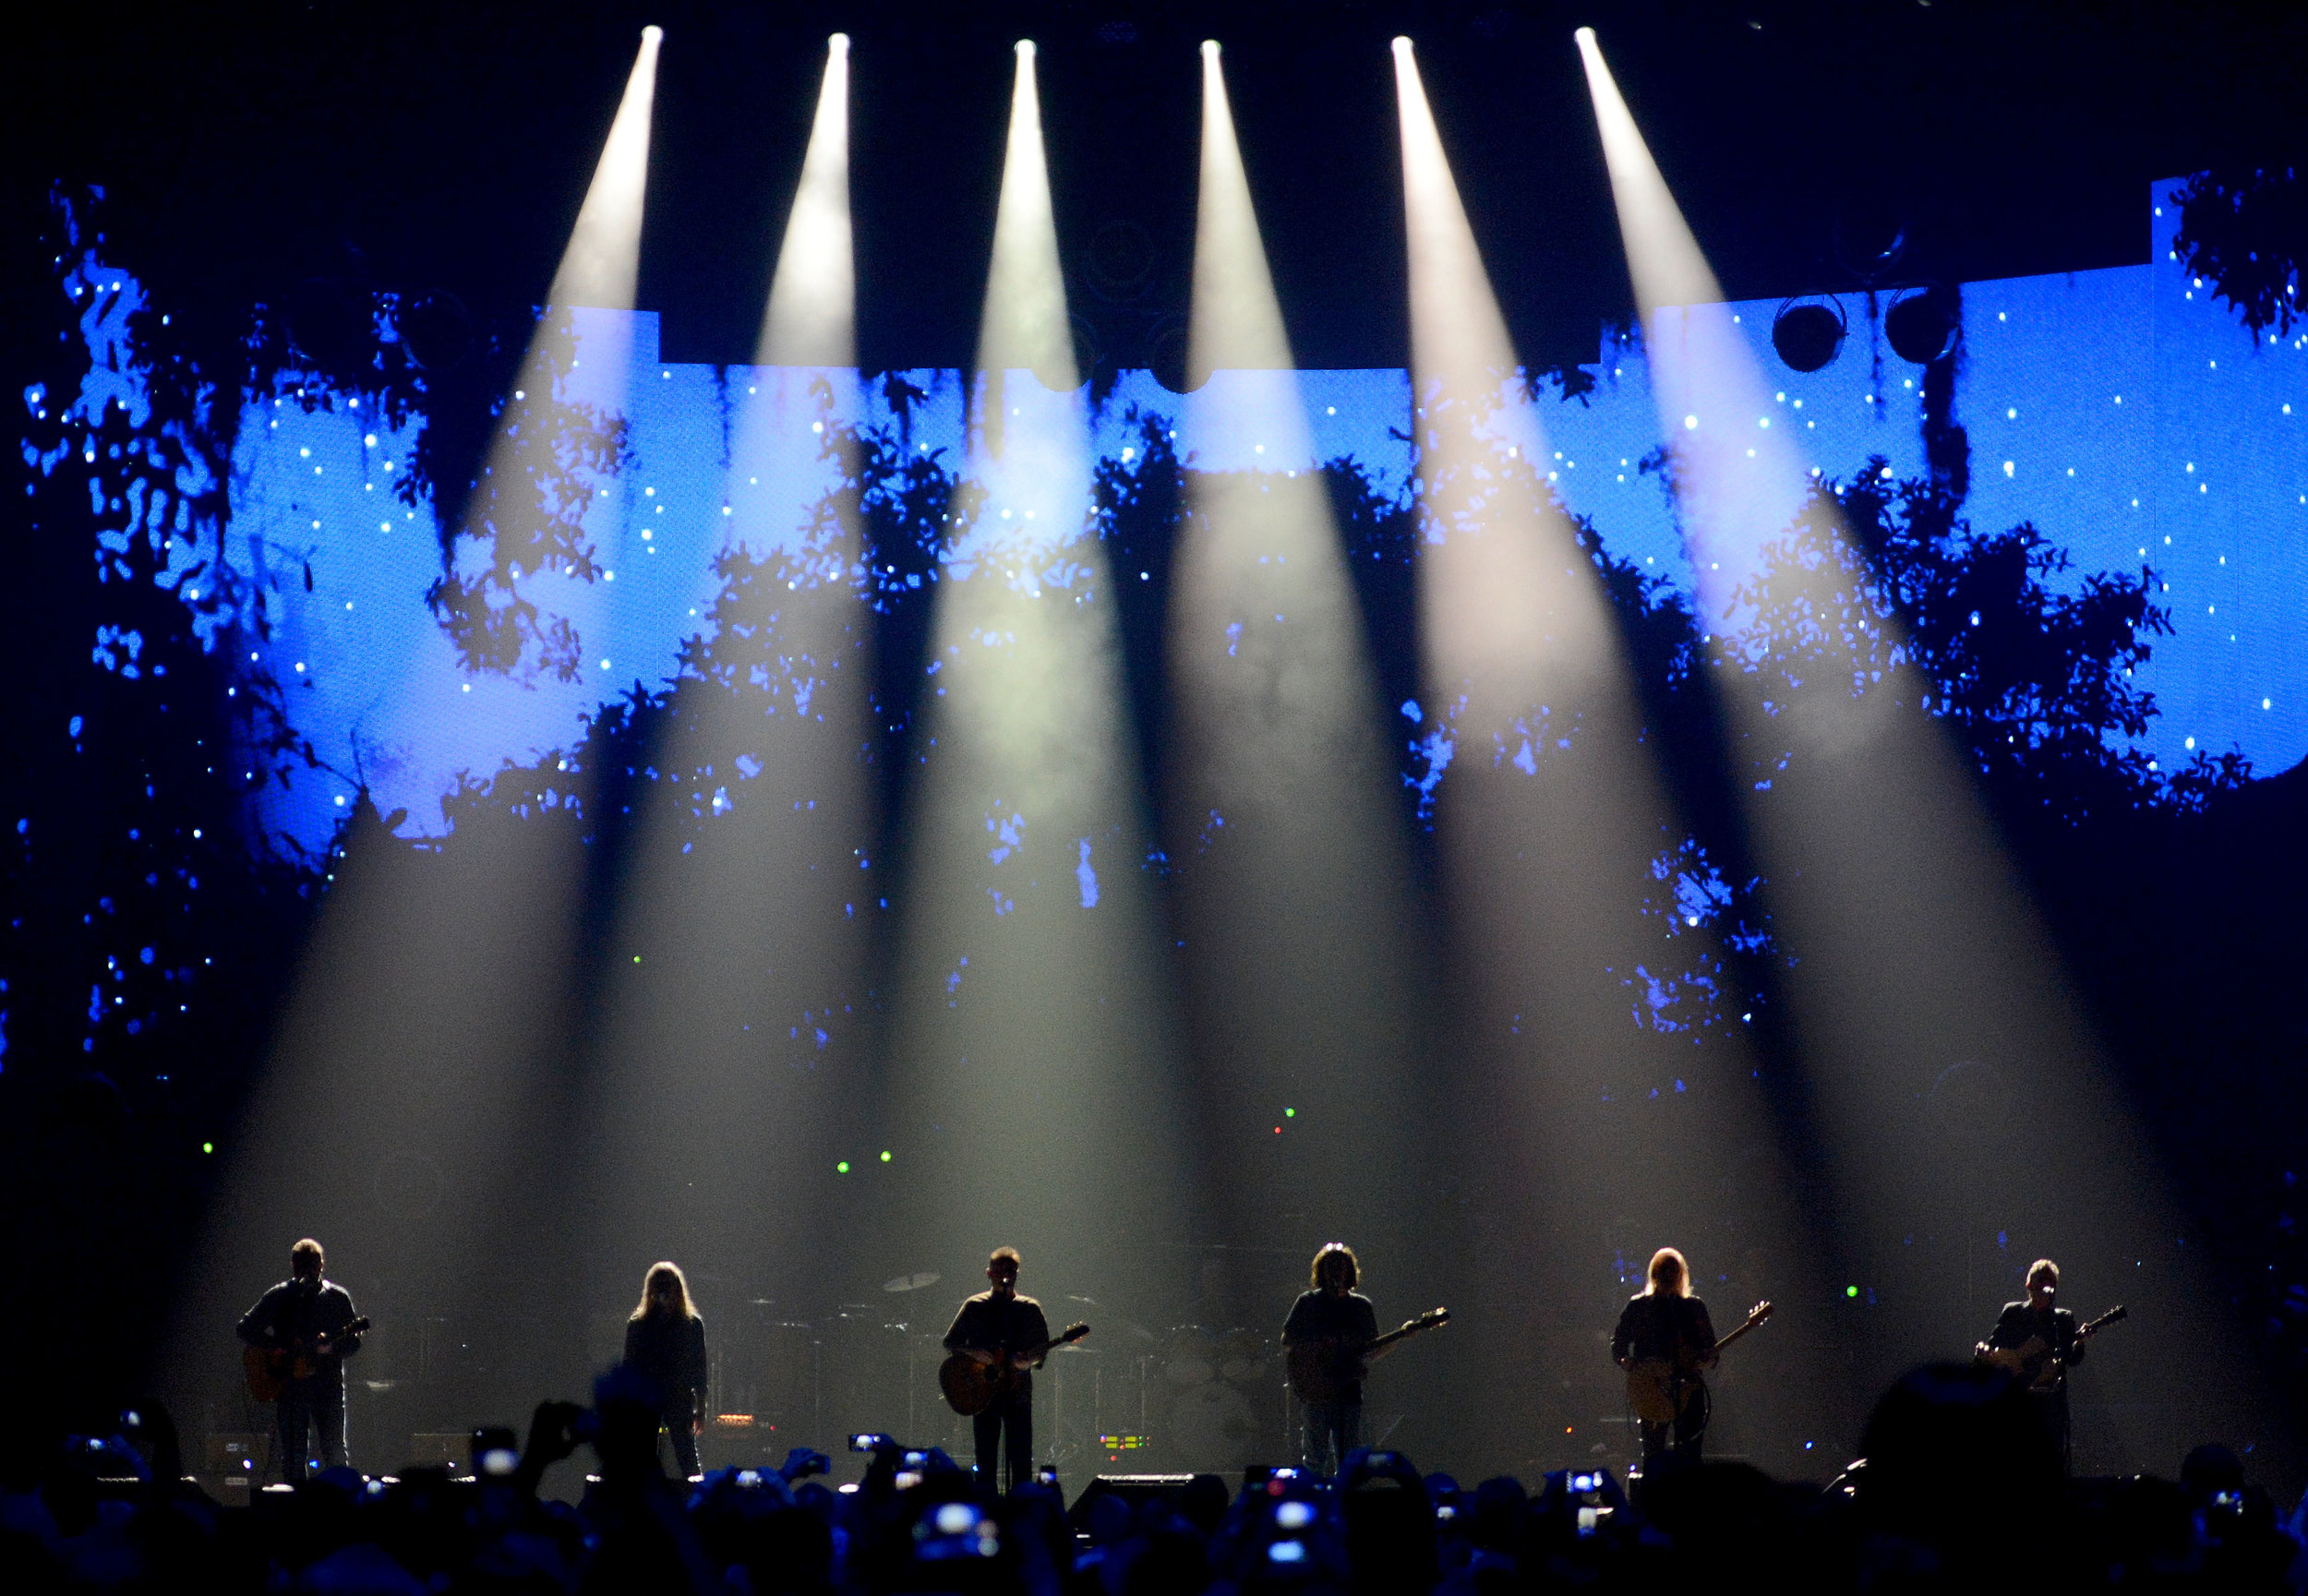 The Eagles, from left, Vince Gill, Timothy B. Schmit, Don Henley, Deacon Frey (son of the late Glenn Frey), Joe Walsh and Steuart Smith  perform Wednesday, September 12, 2018 during the first of three shows at The Forum in Inglewood this week.